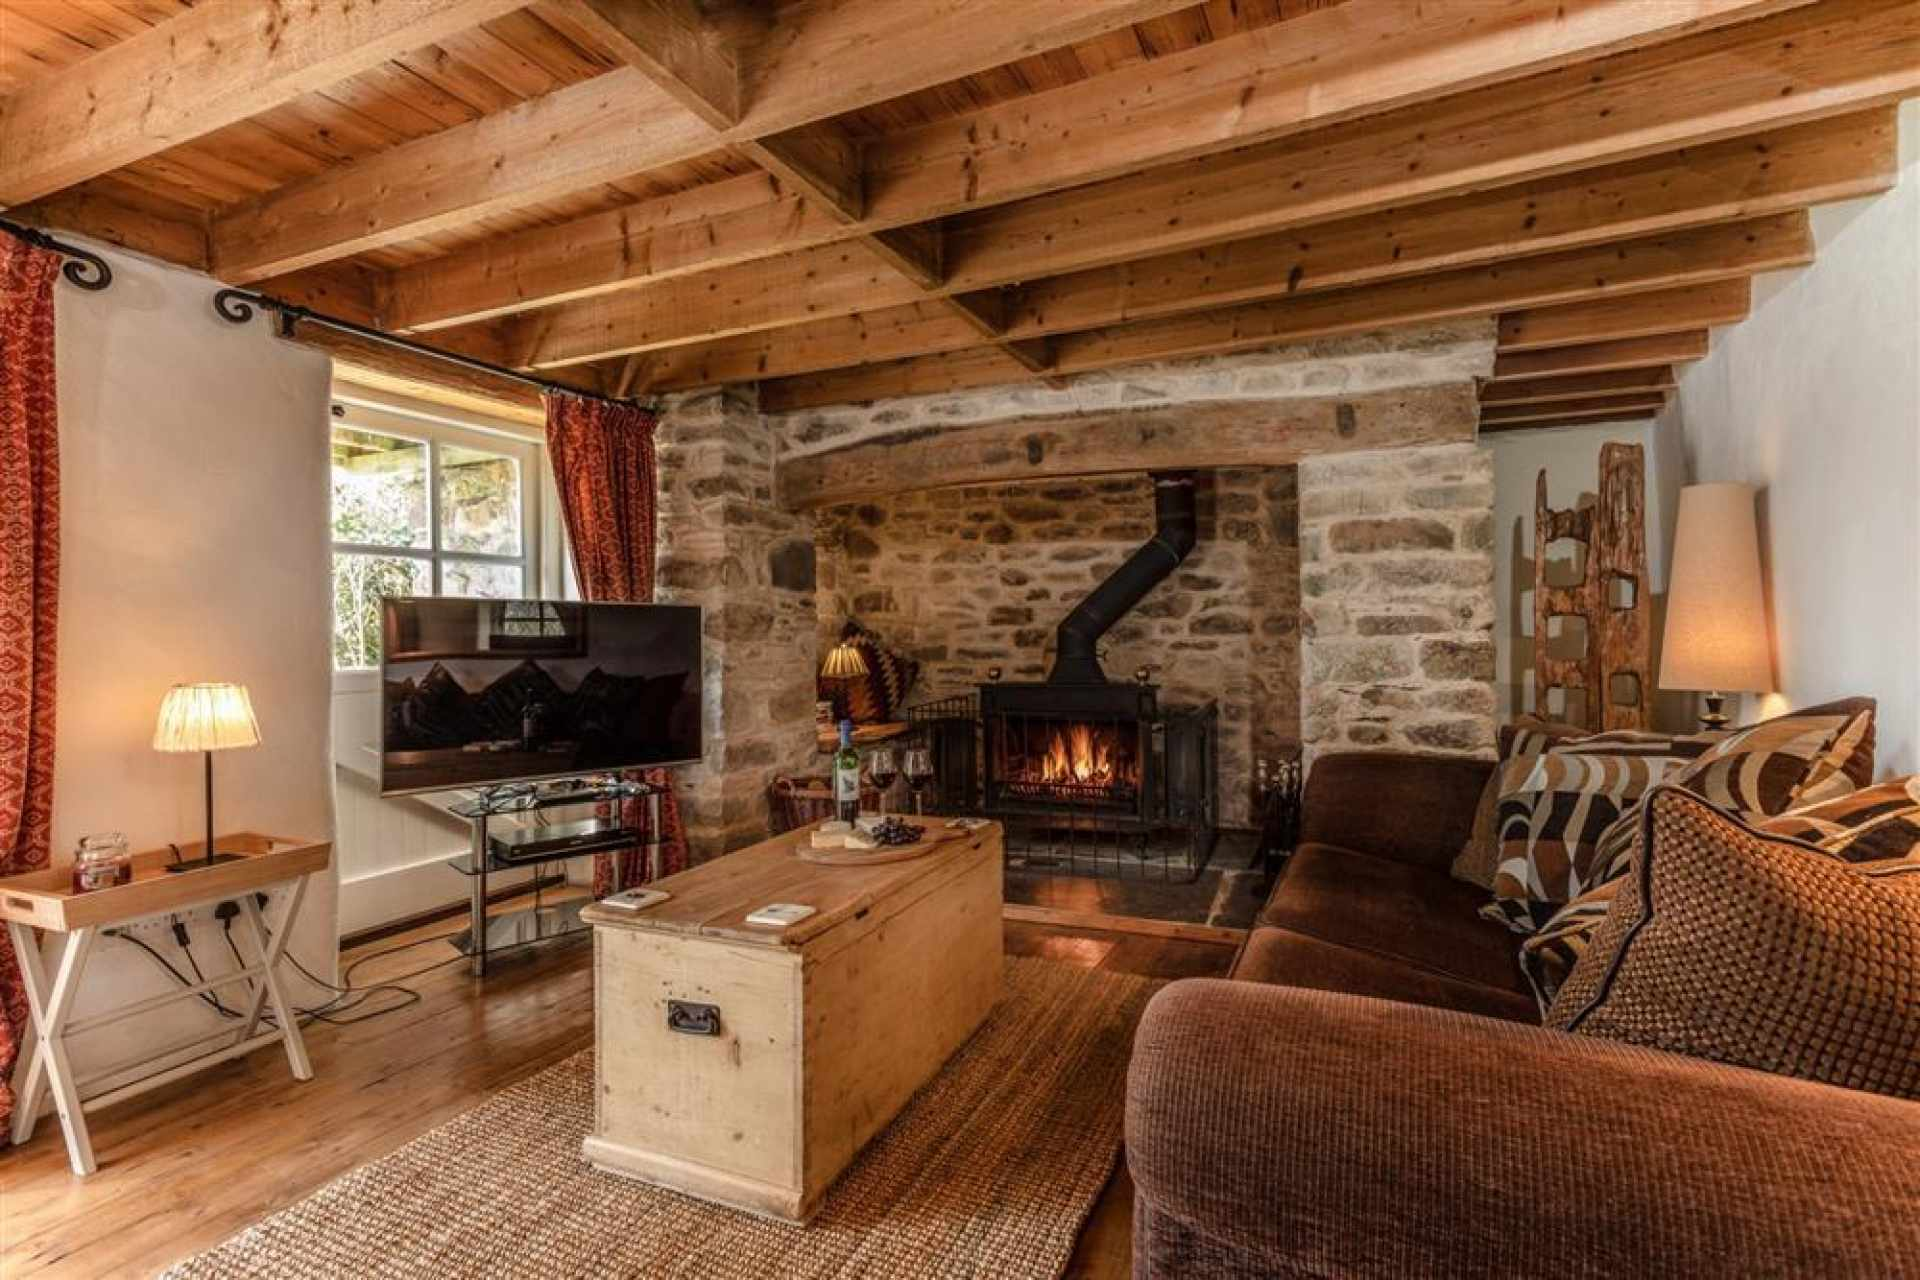 Forge lounge with Inglenook fireplace